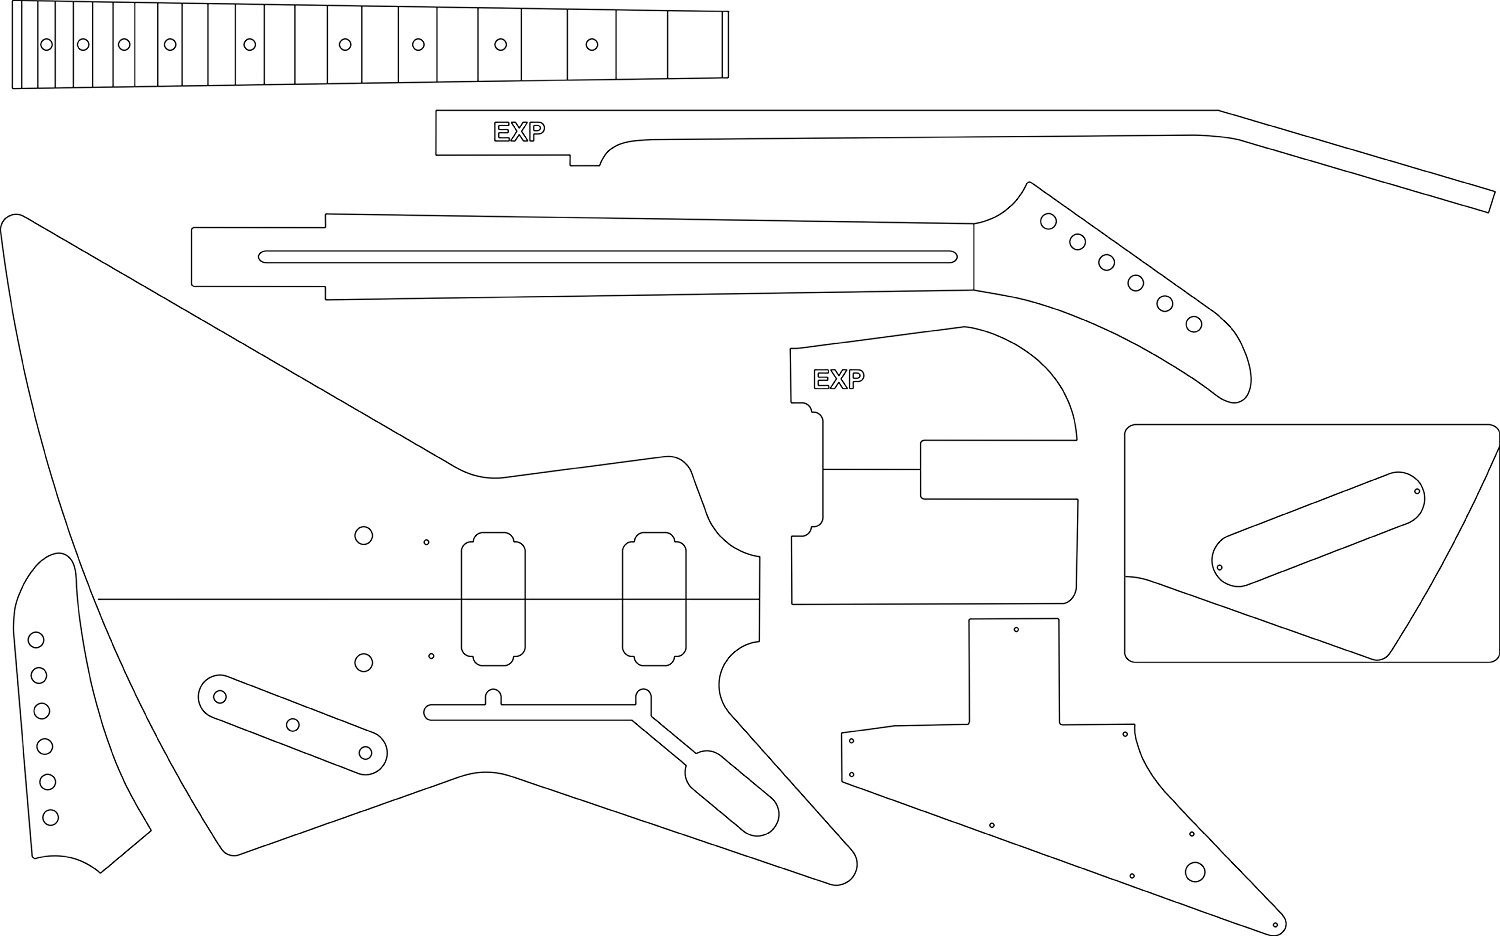 Electric Guitar Layout Template Explorer